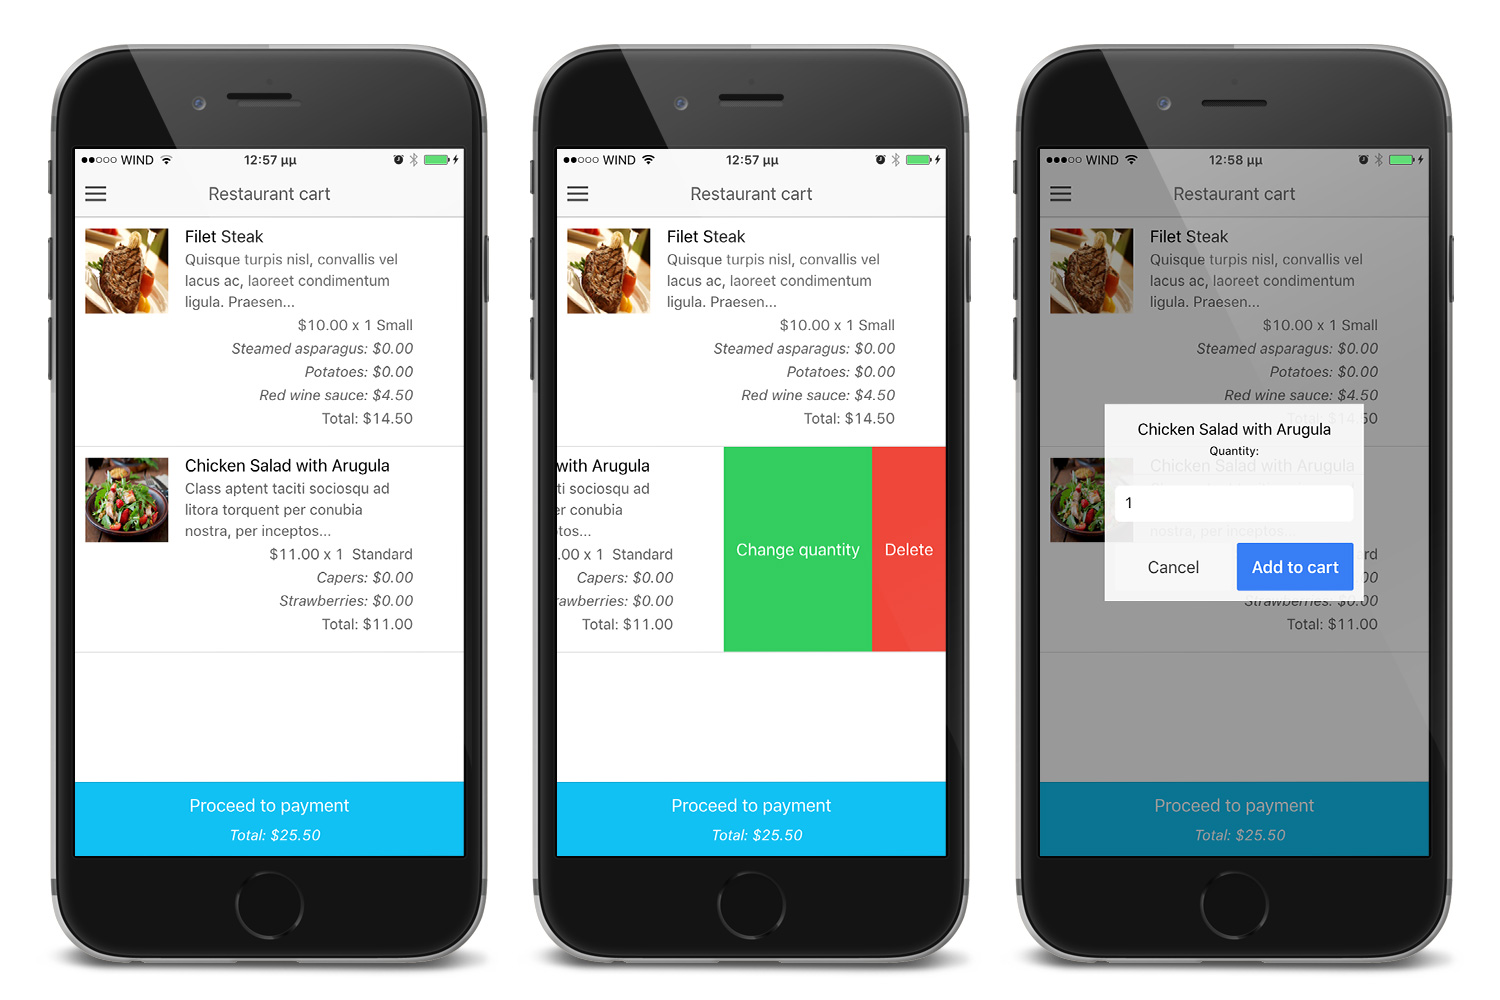 Restaurant Ionic 5 - Full Application with Firebase backend - 12